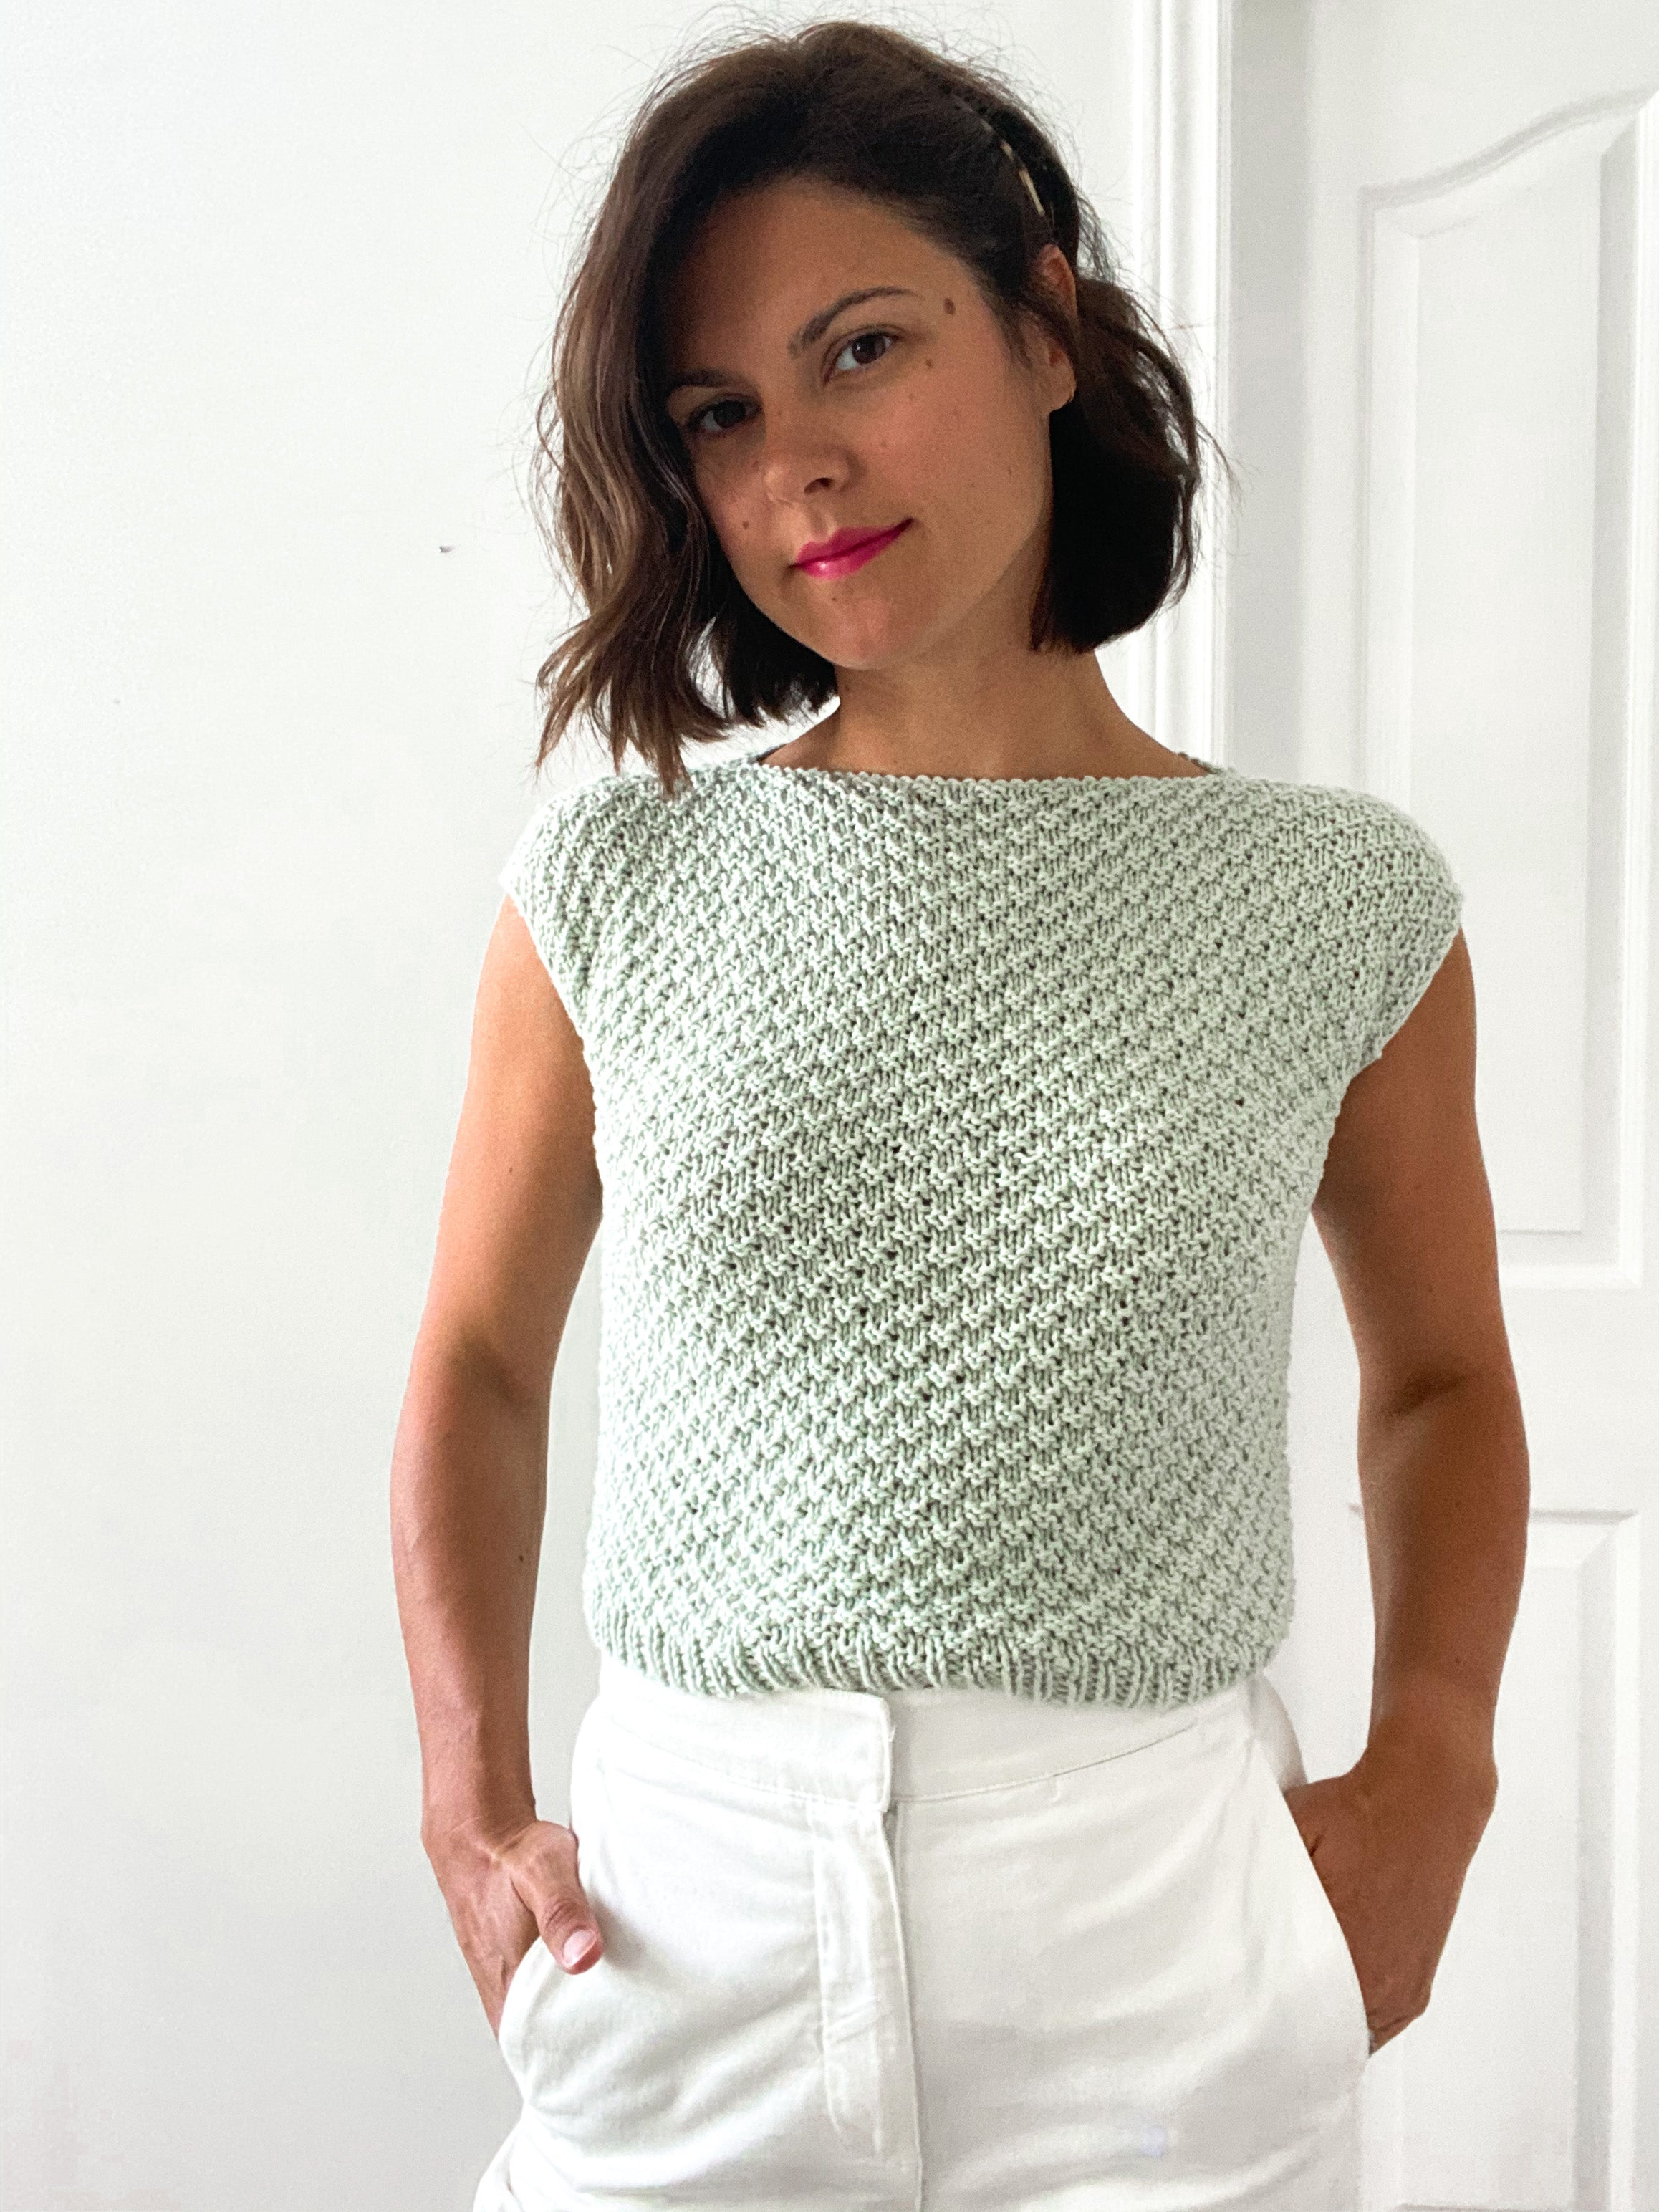 The Louellen Tee Pattern